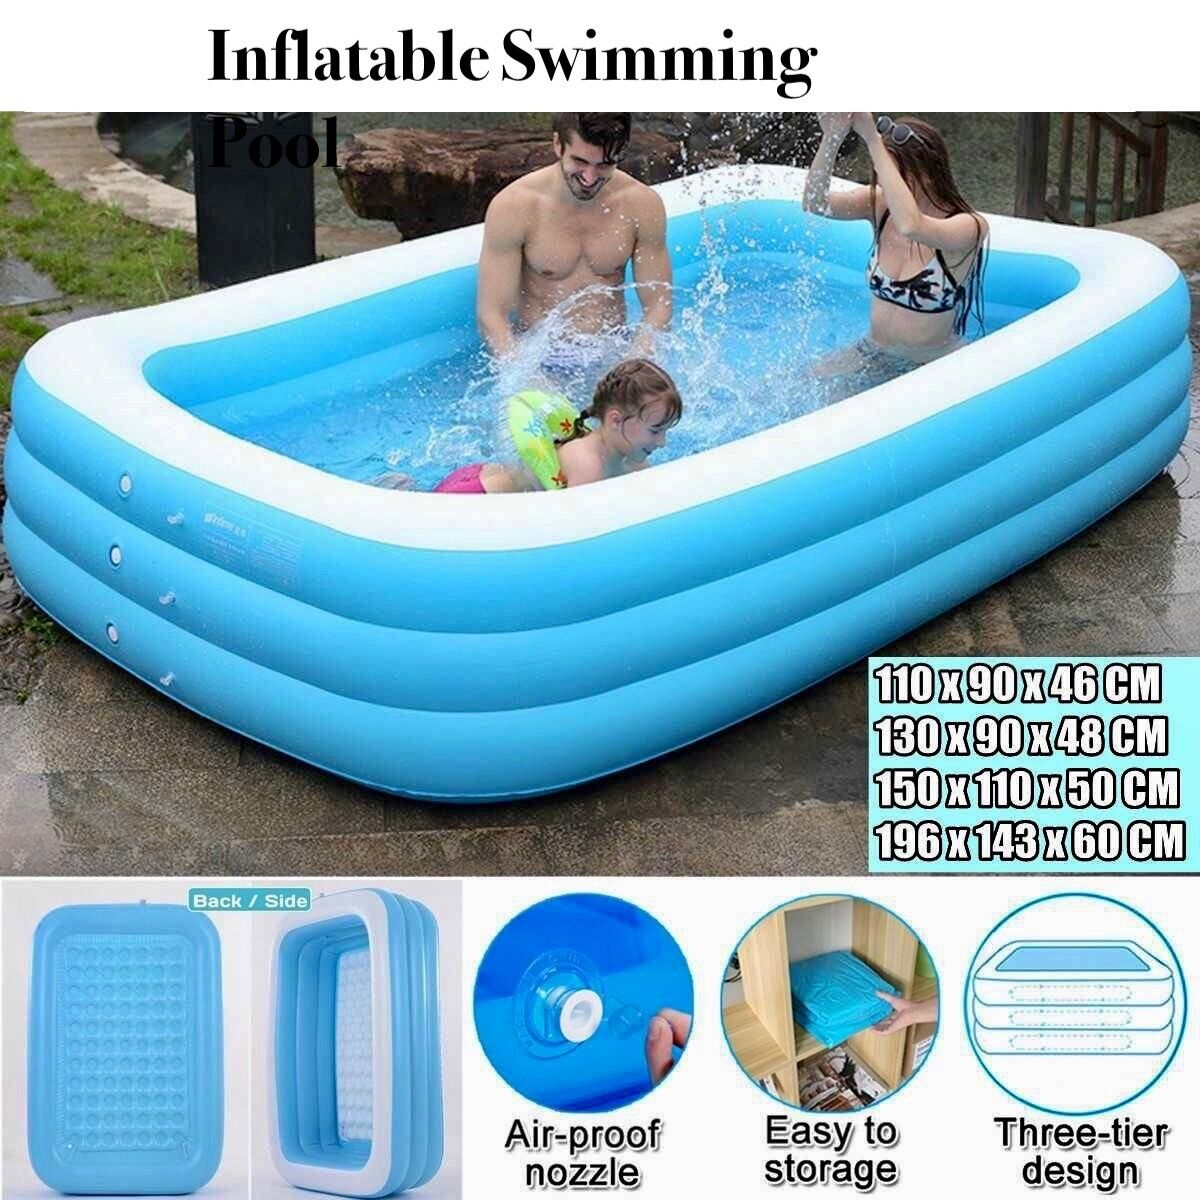 Inflatable Swimming Pool For Family Childrens Kids Baby Large Water Rectangular